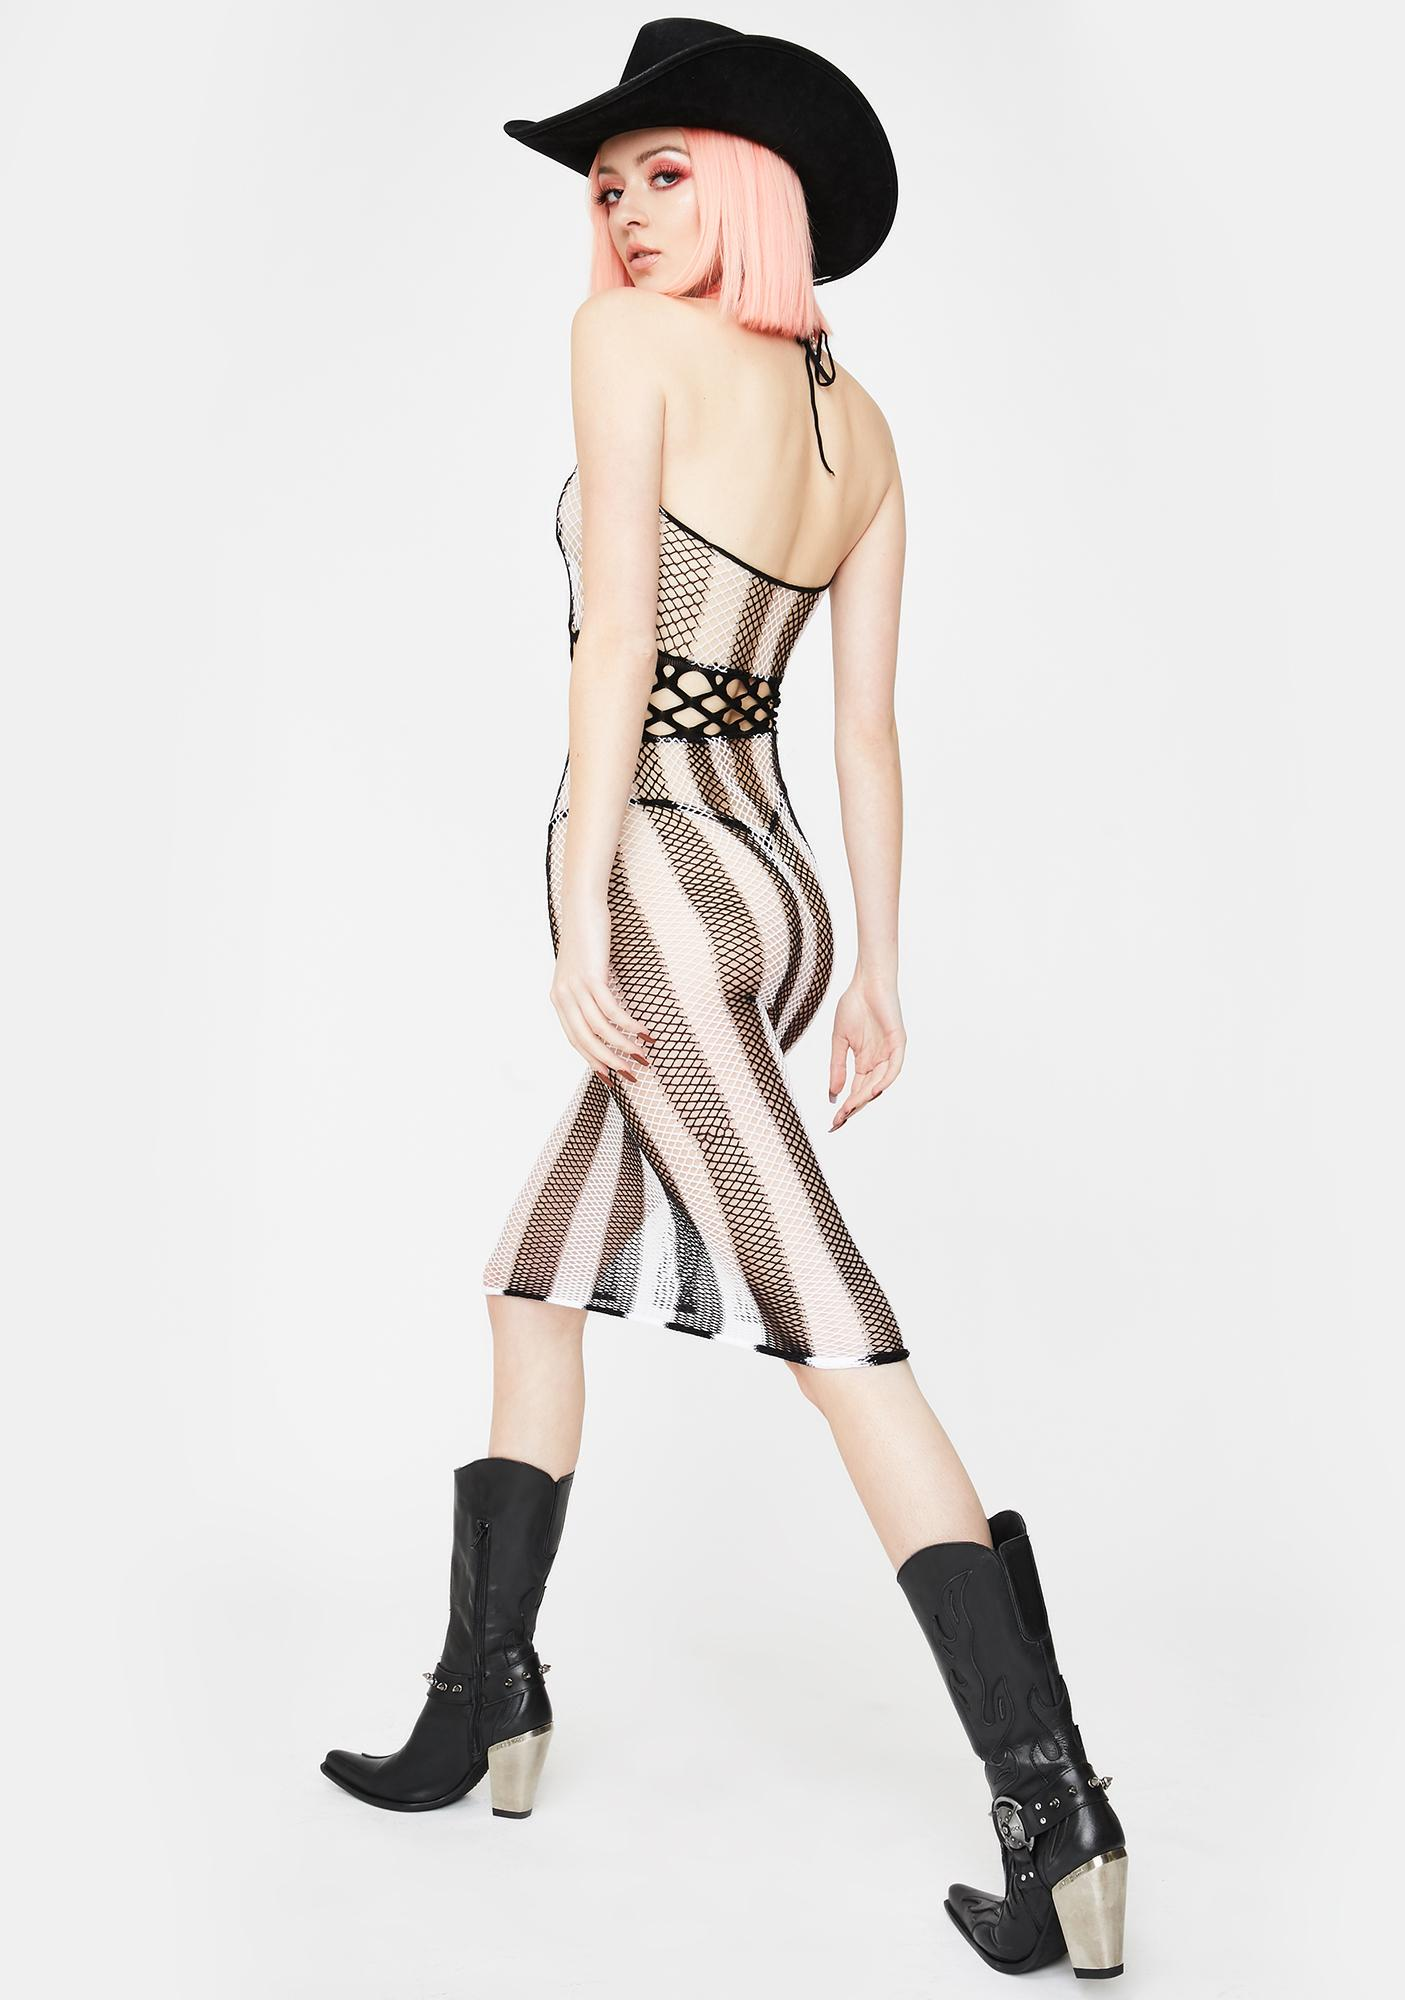 Dangerous Drifter Fishnet Dress